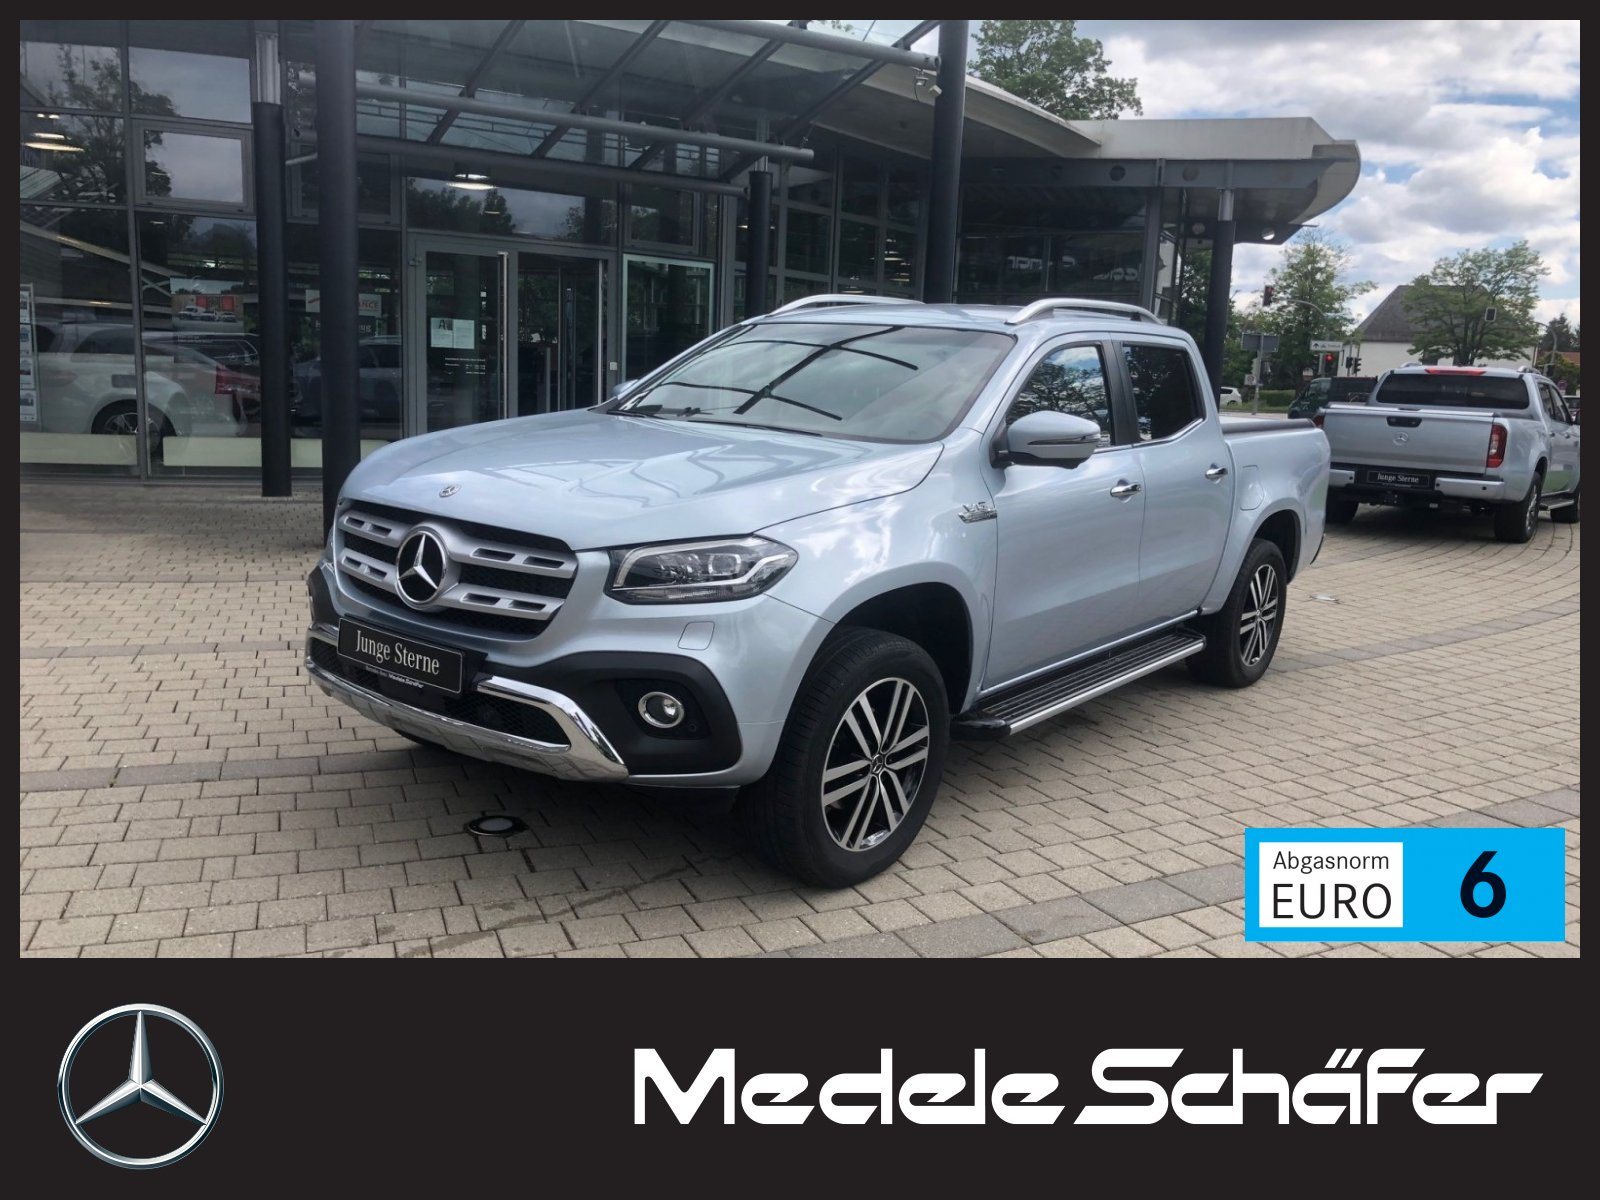 Mercedes-Benz X 350 V6 4MATIC POWER EDITION LEDER AHK ROLLO, Jahr 2019, Diesel